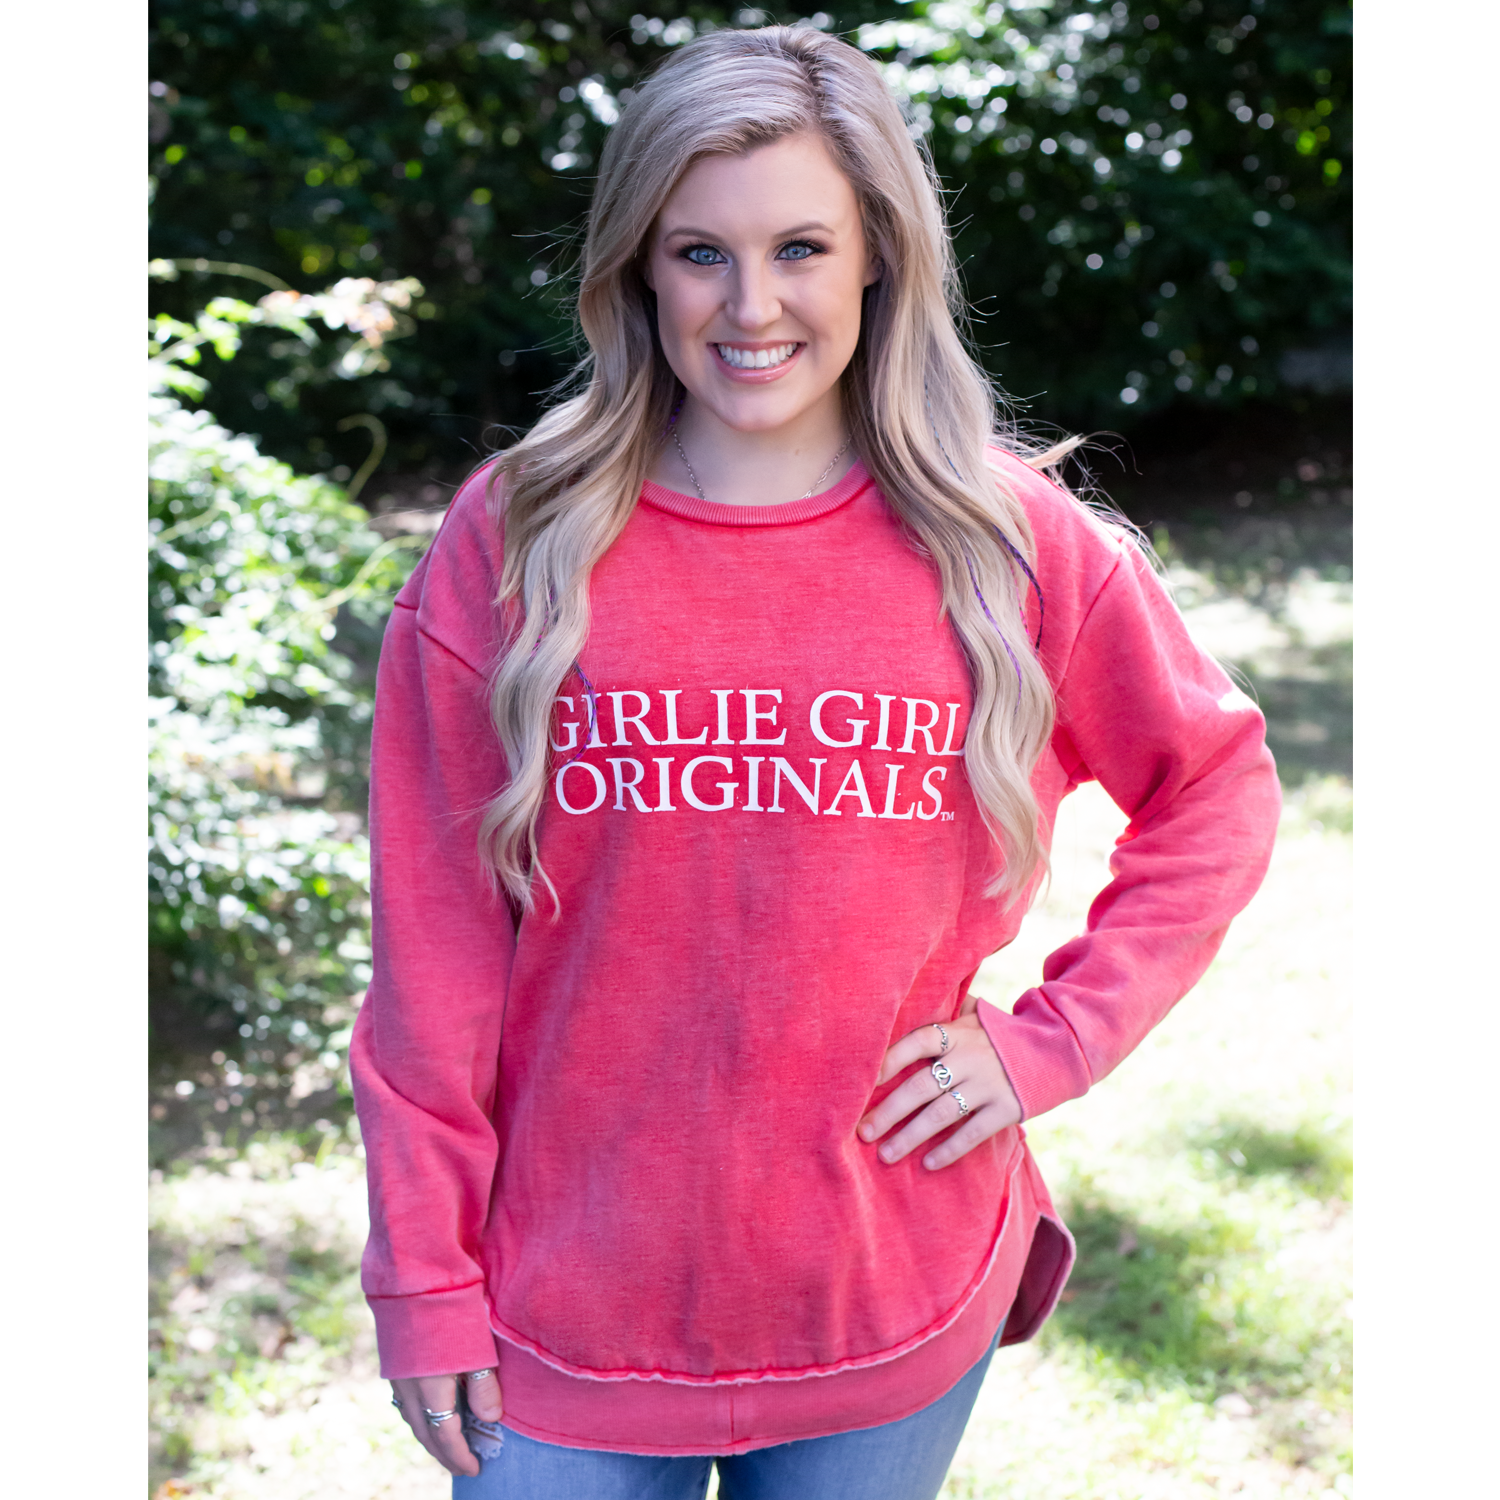 Girlie Girl Originals Logo Sweatshirt Heather Red